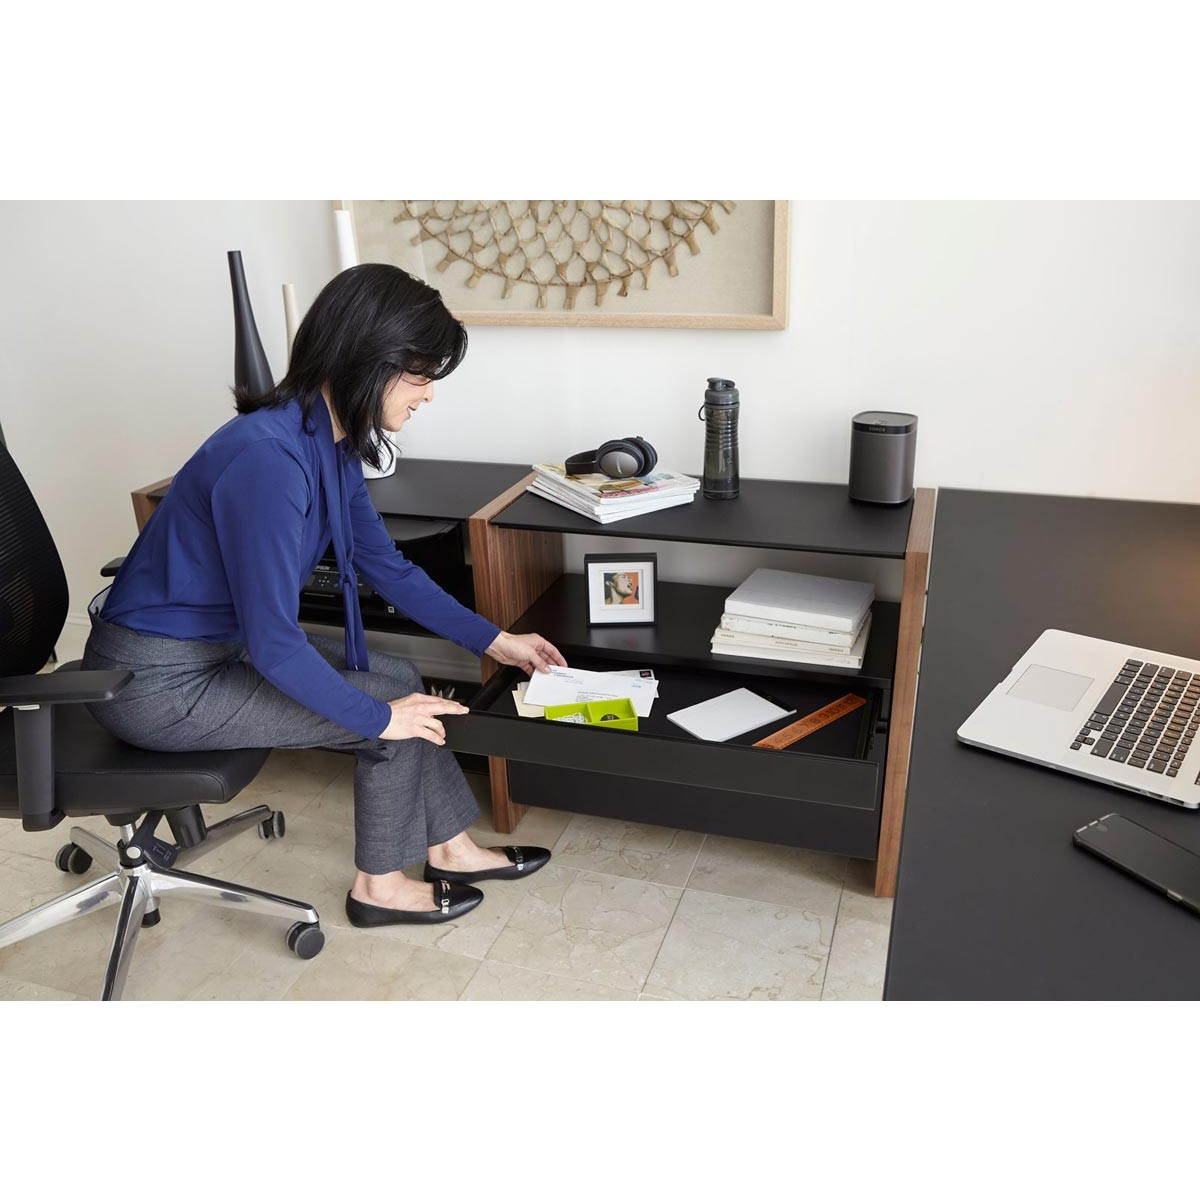 semblance office modular system desk. $3,540.00 USD Semblance Office Modular System Desk